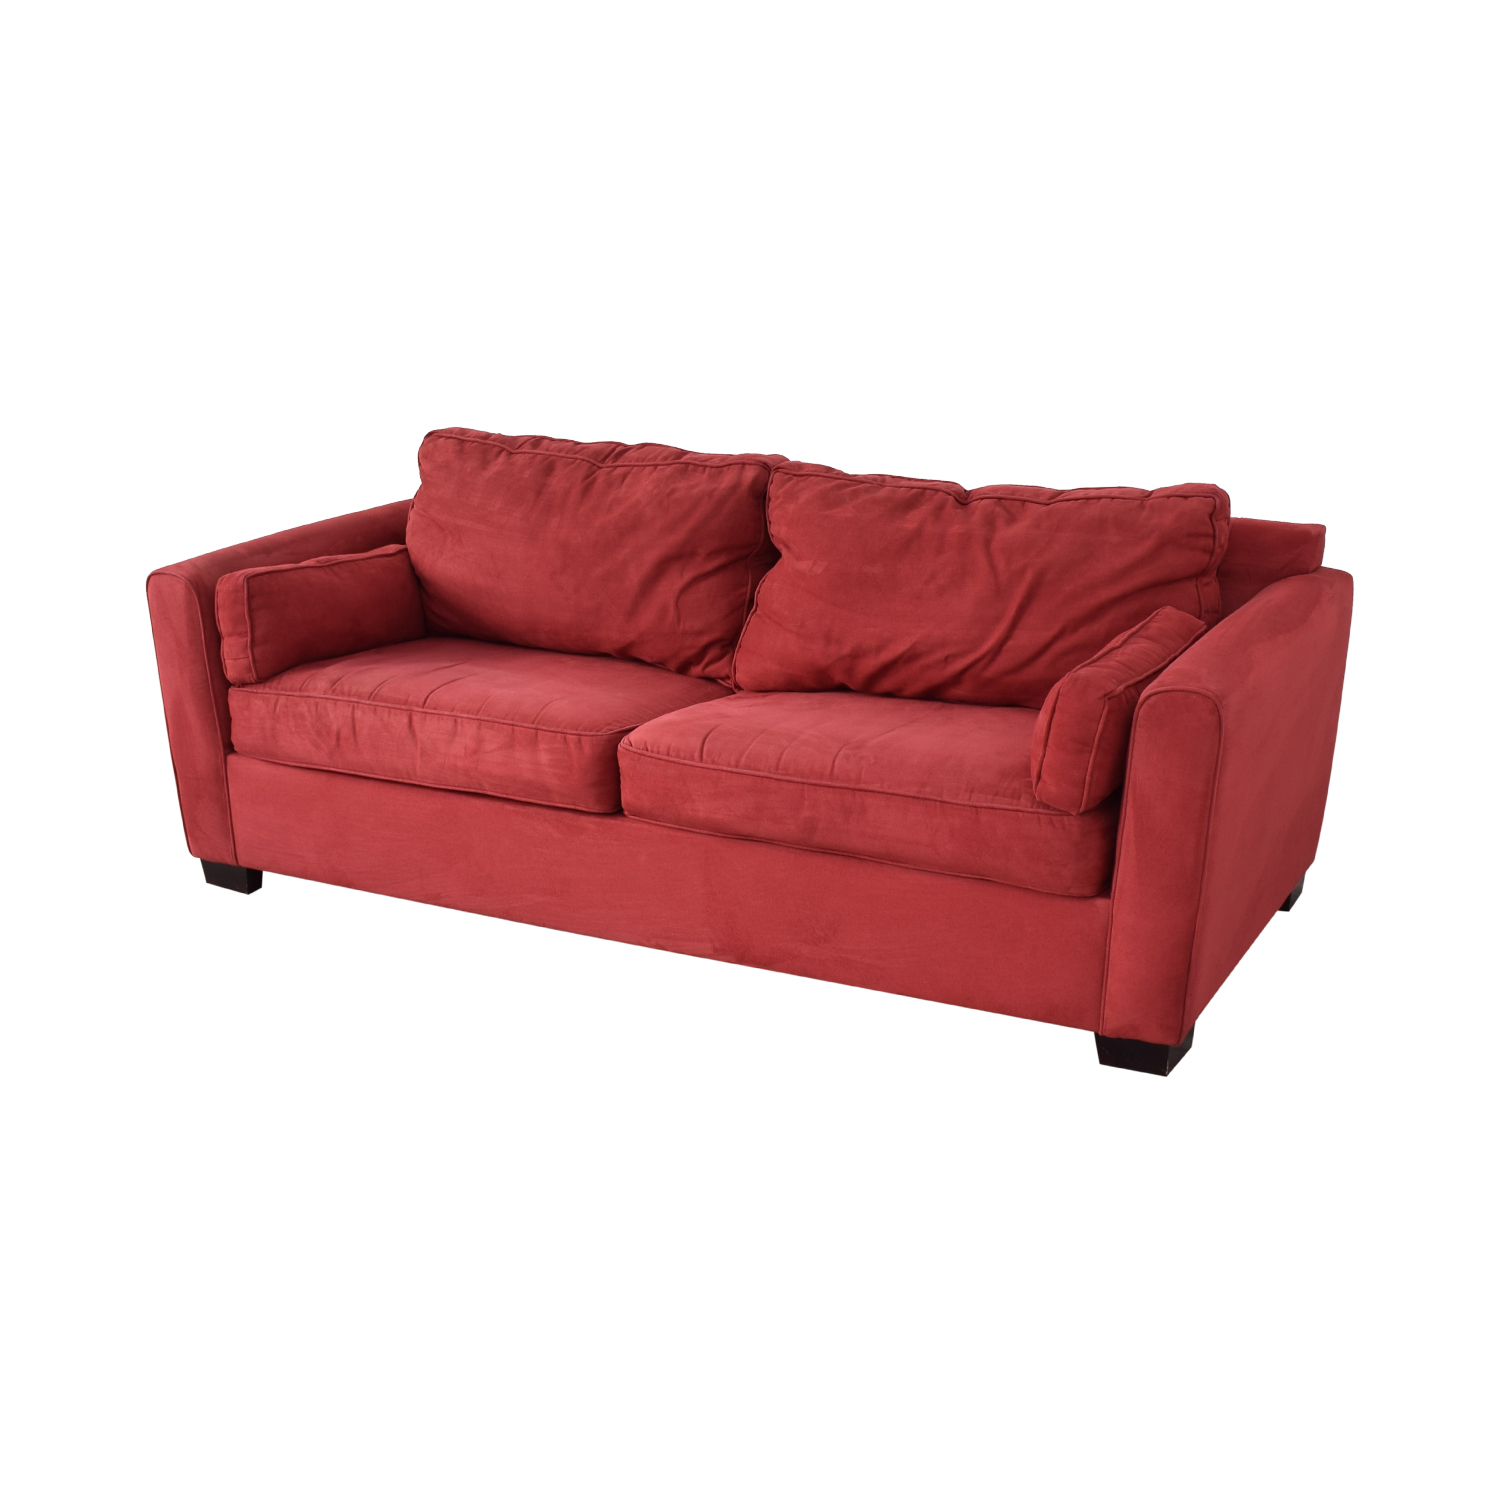 80% OFF - Bloomingdale\'s Bloomingdale\'s Red Two-Cushion Convertible Sofa /  Sofas